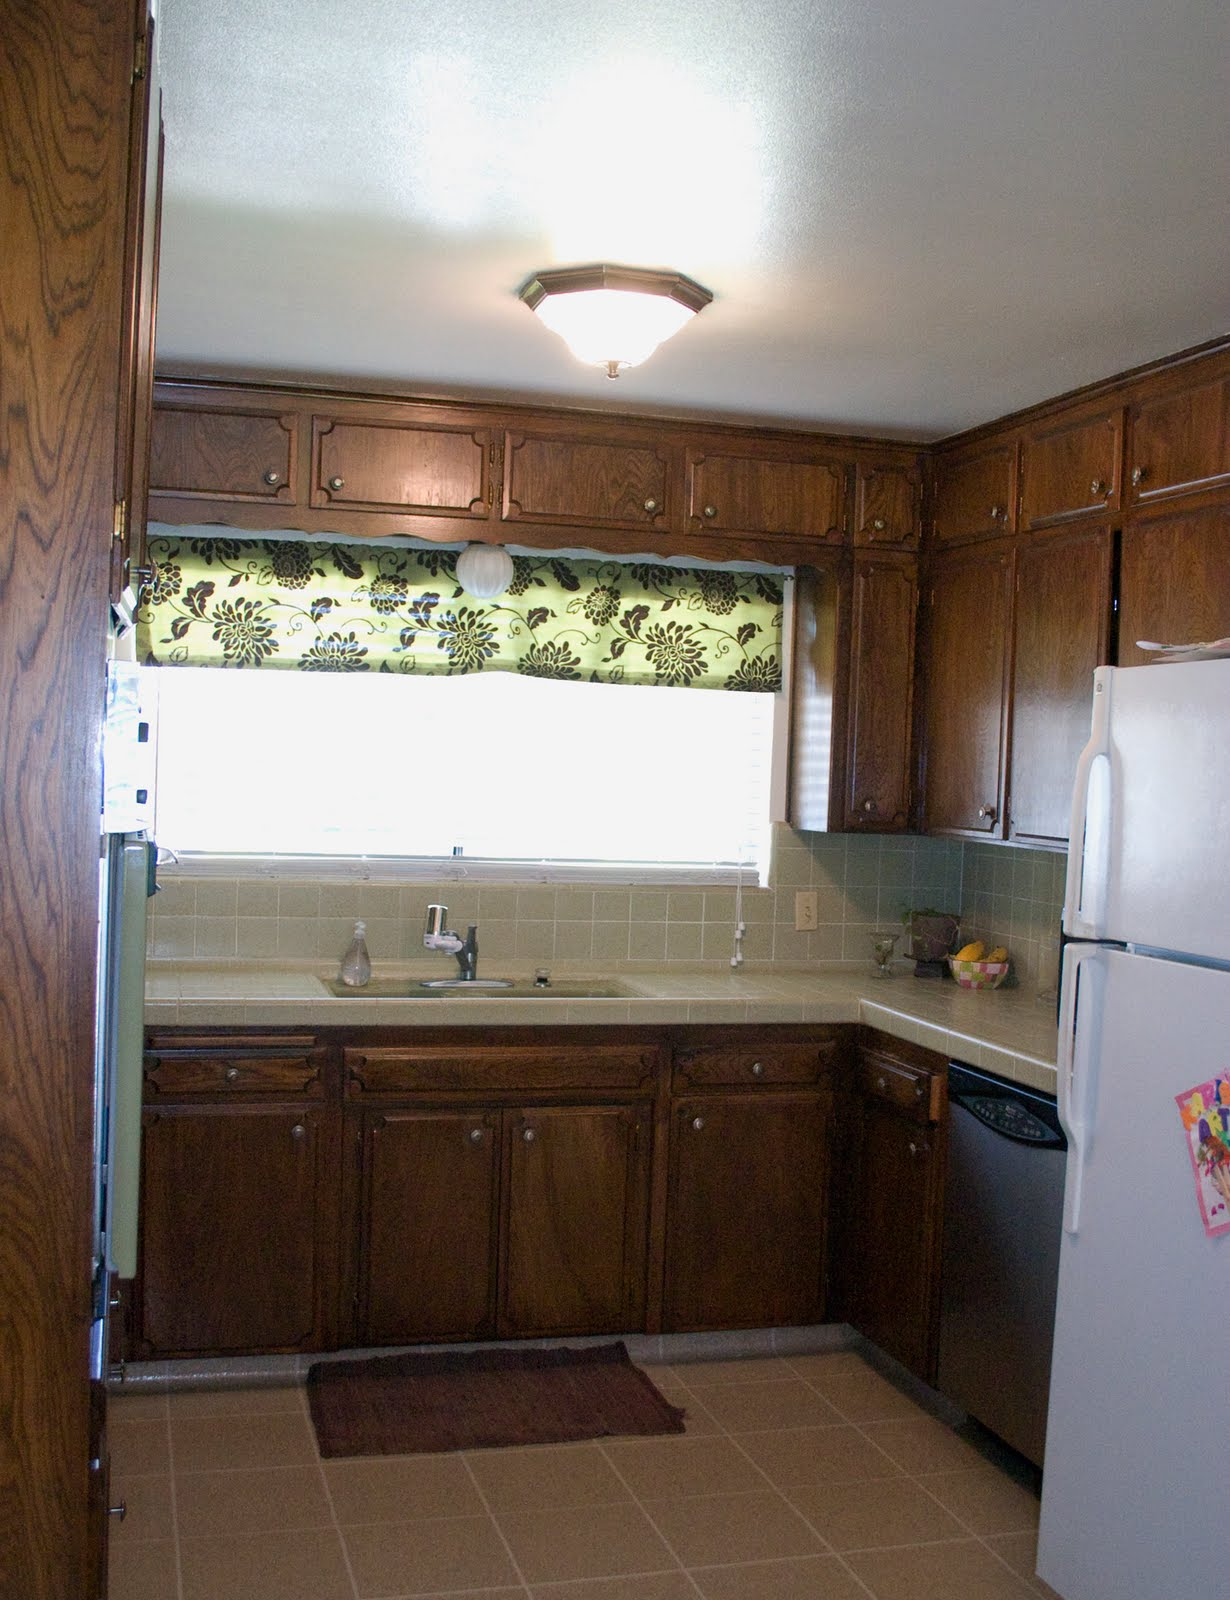 My Redo Of Our Manufactured Home In 2019: Design On A Shoestring Budget: Kitchen Redo?